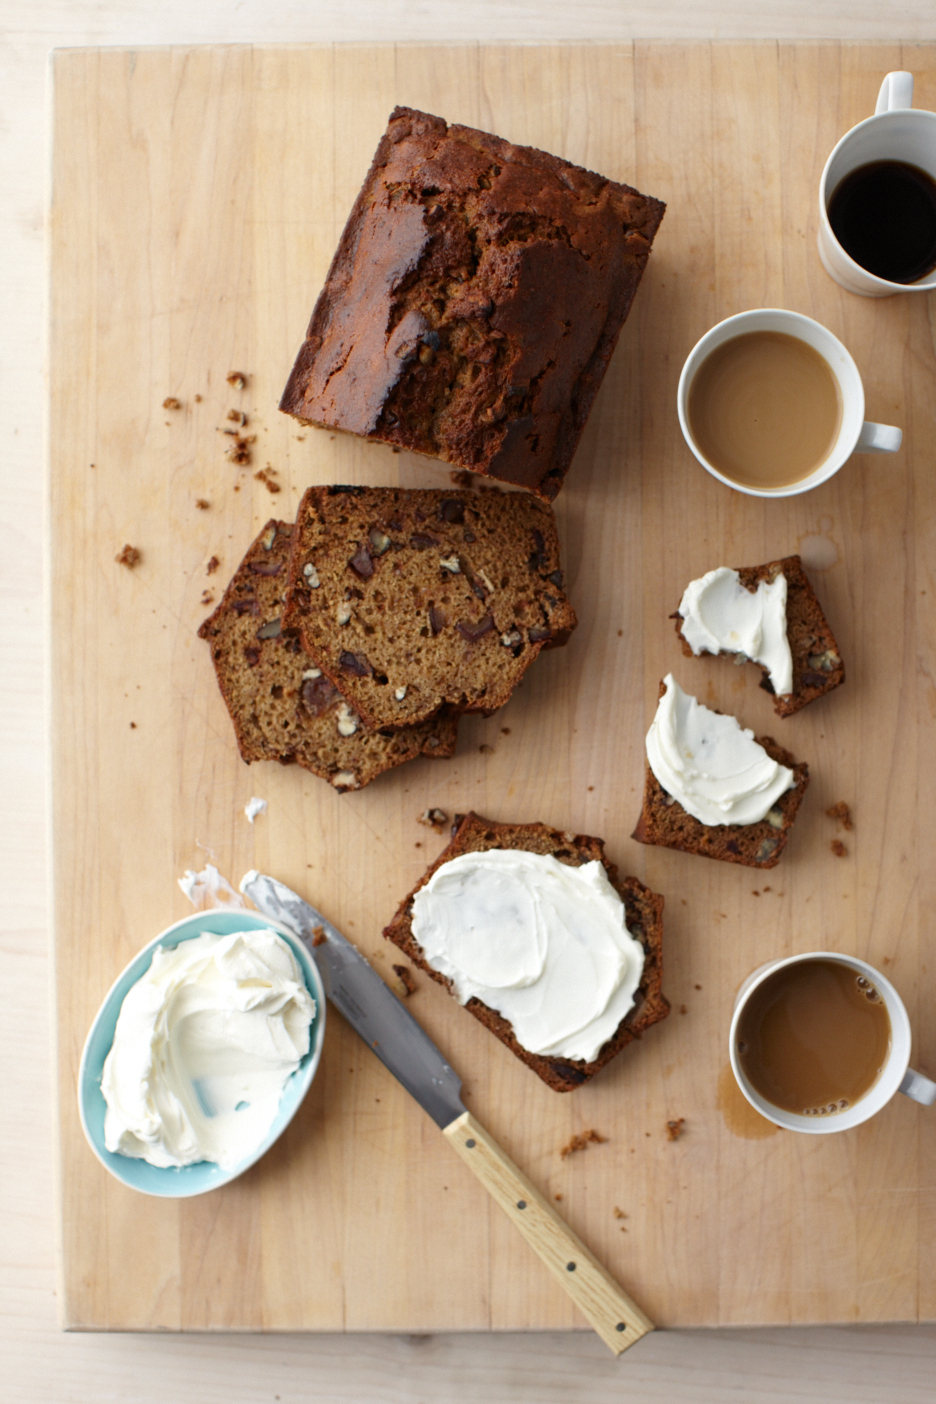 This Sweet, Nutty (And Healthy!) Loaf Is Martha's Favorite Breakfast Bread